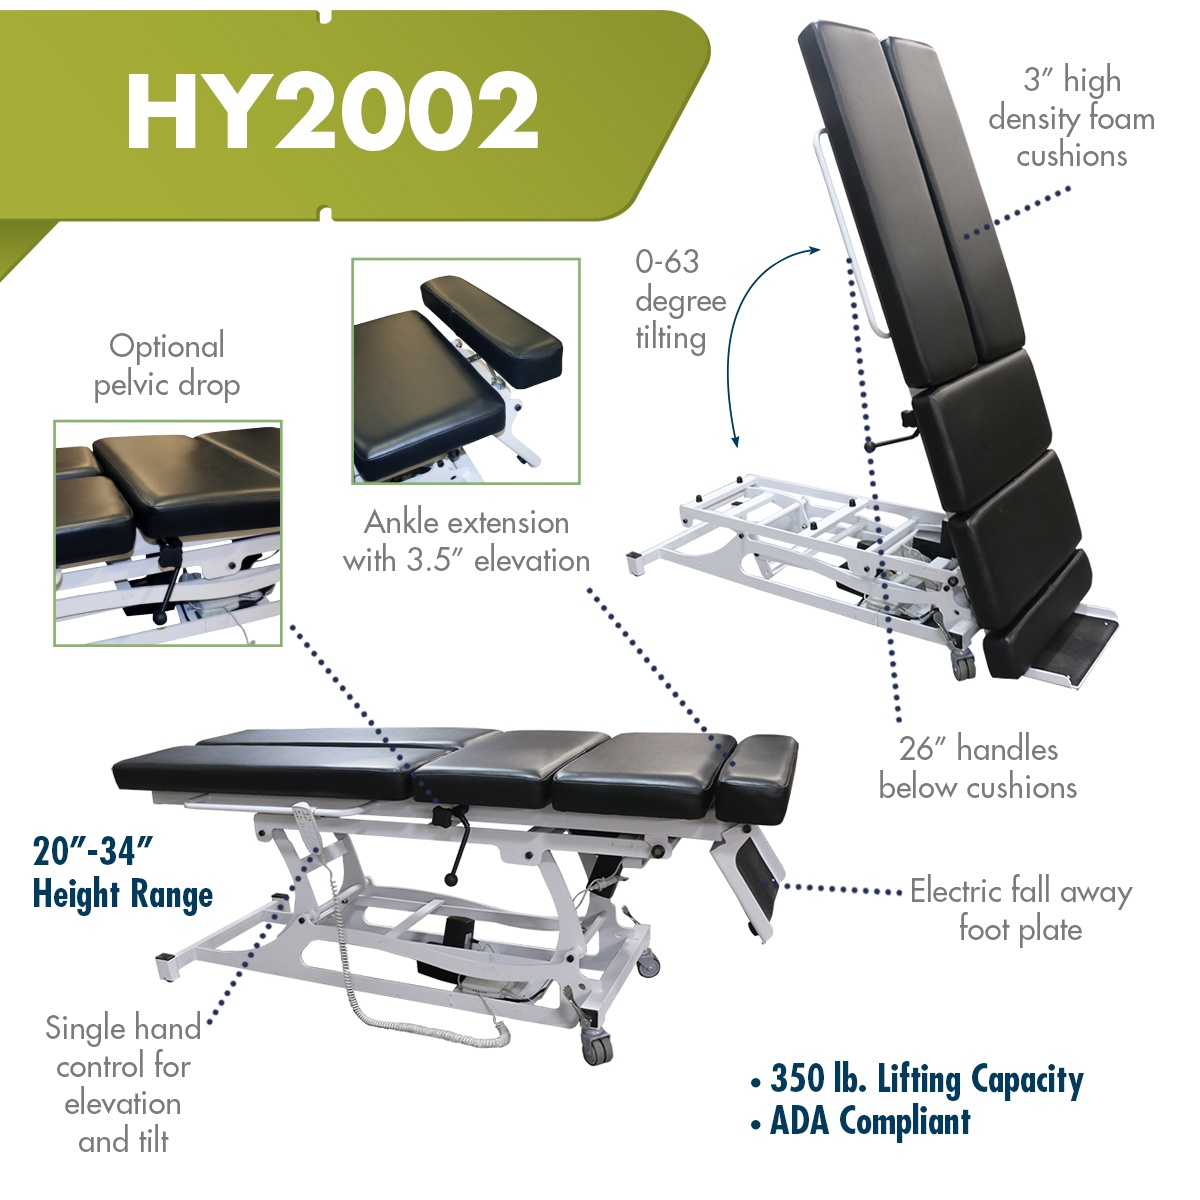 HY2002_features2